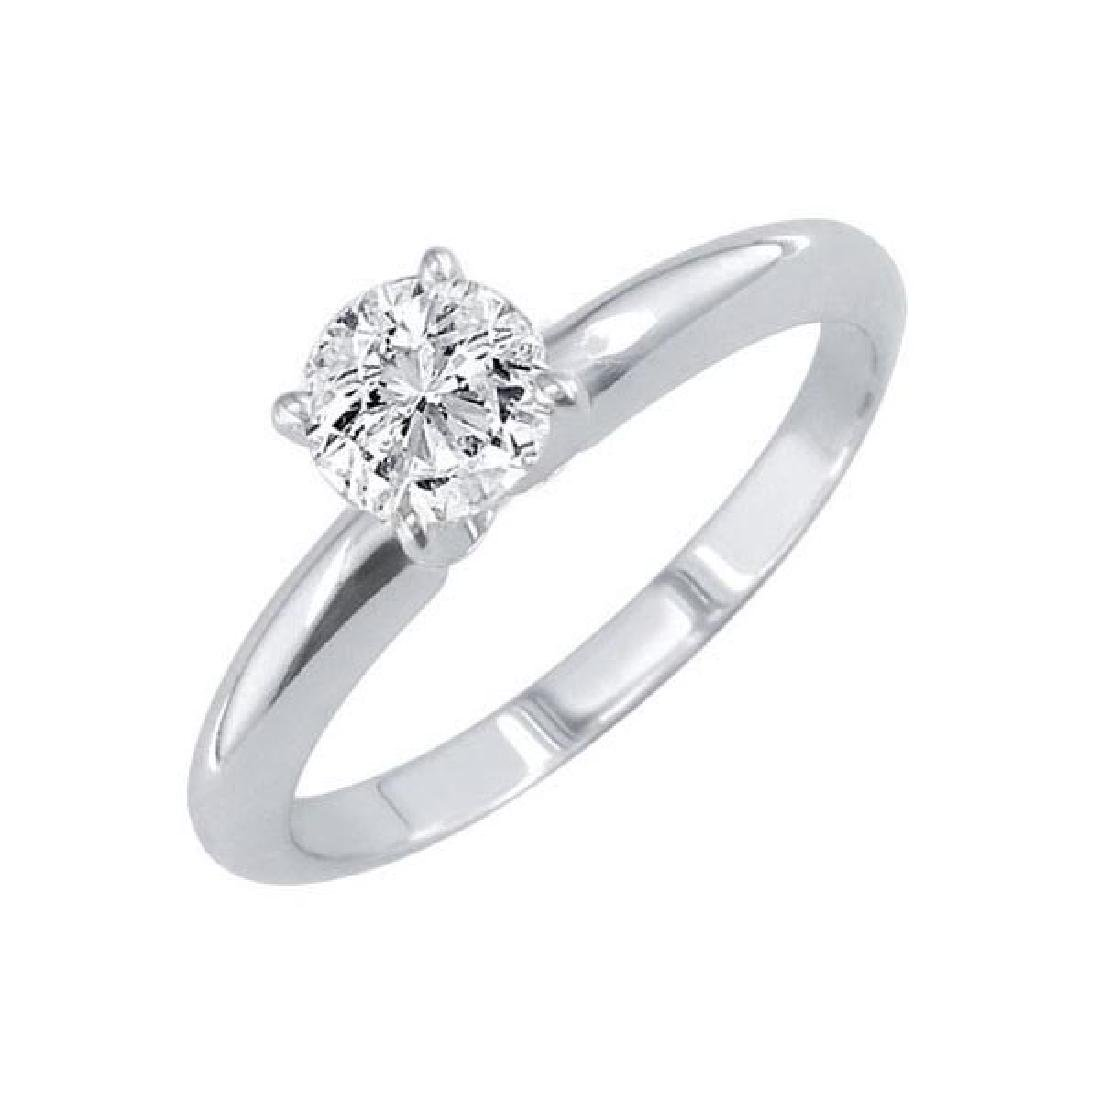 Certified 1.13 CTW Round Diamond Solitaire 14k Ring I/S